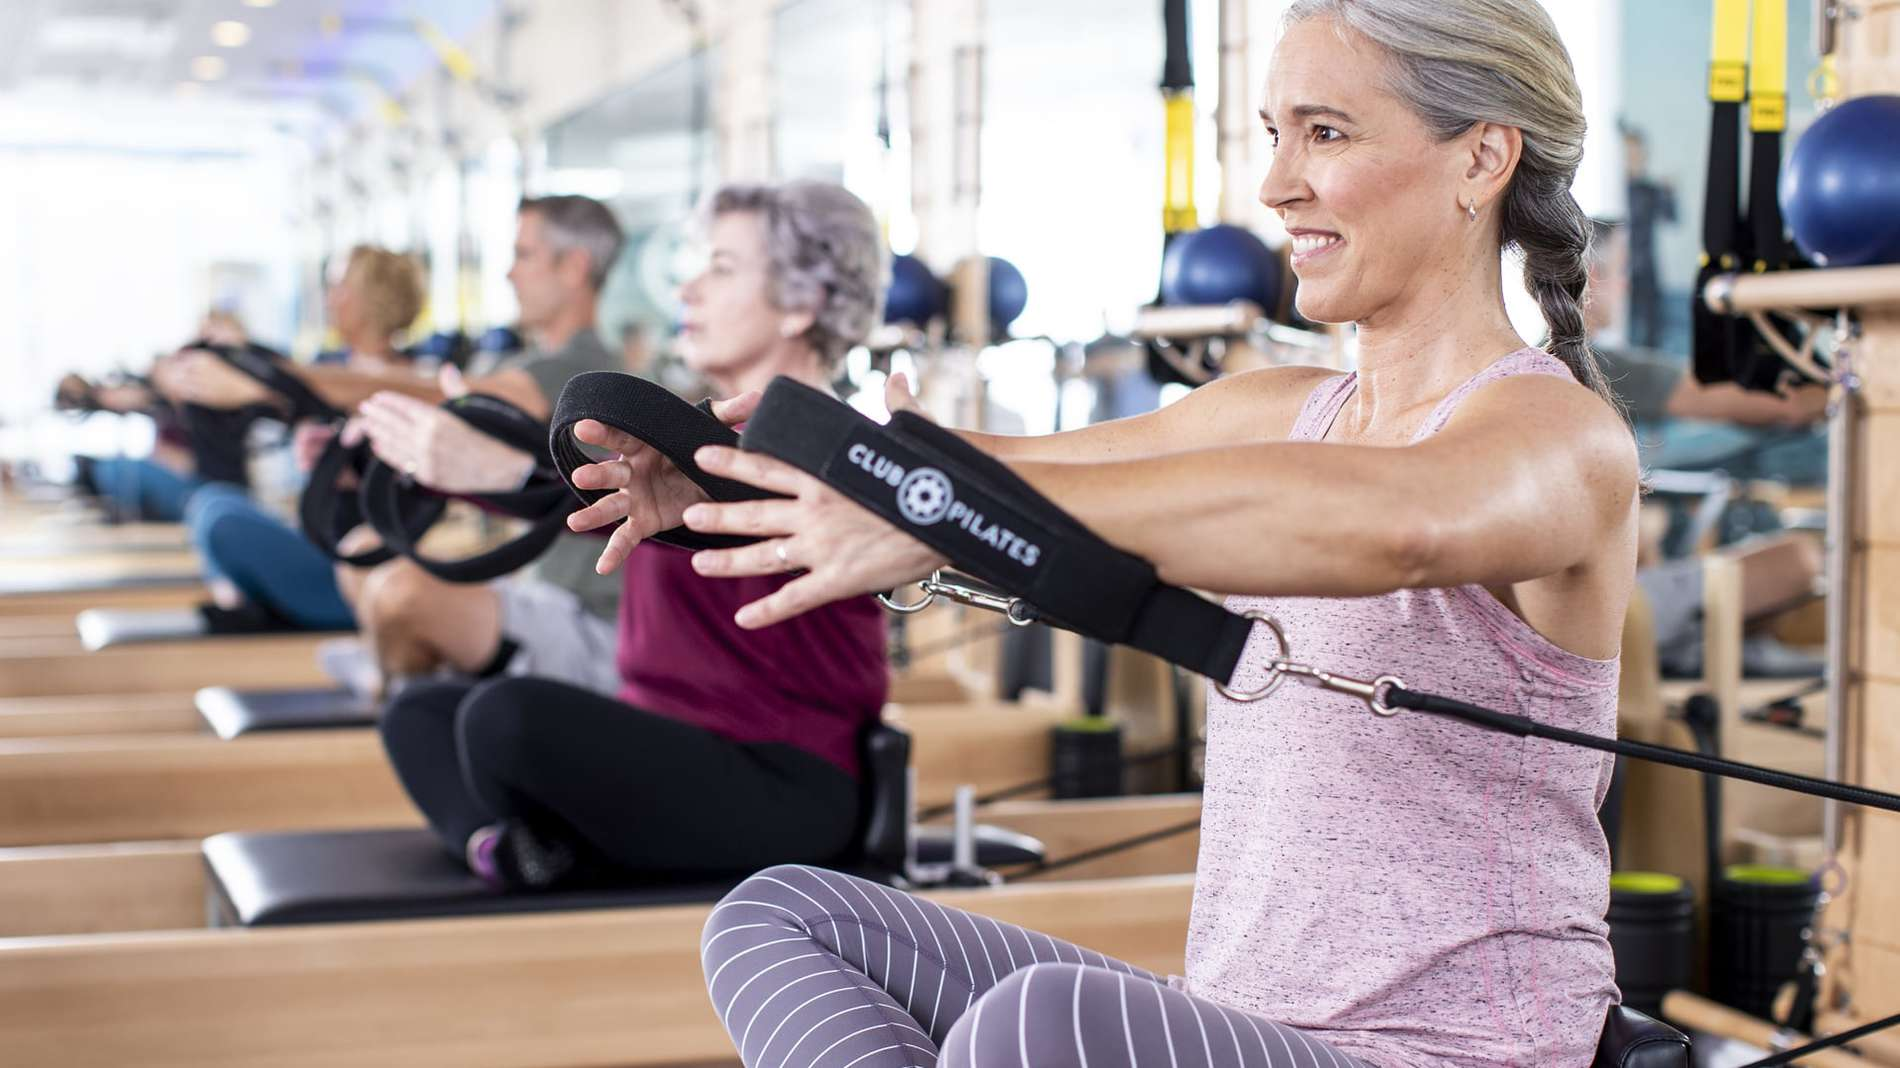 A line of Club Pilates members do stretches with bands.